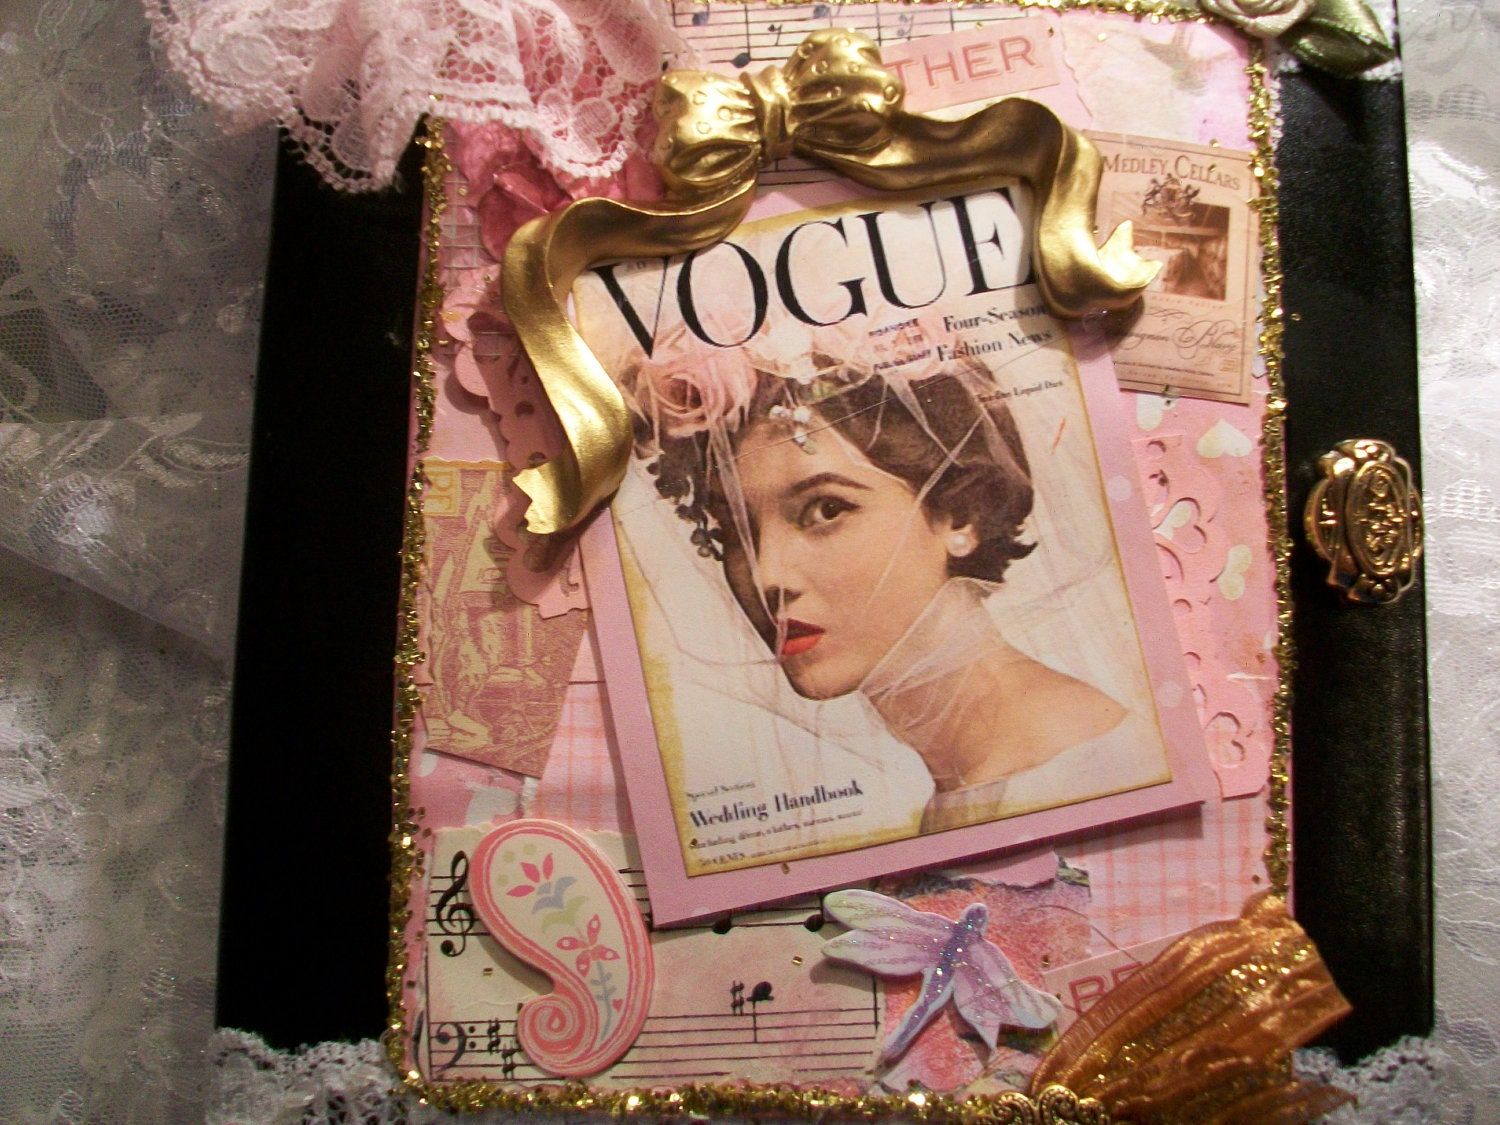 Vogue Cover Bride Journal, Notebook, Keepsake